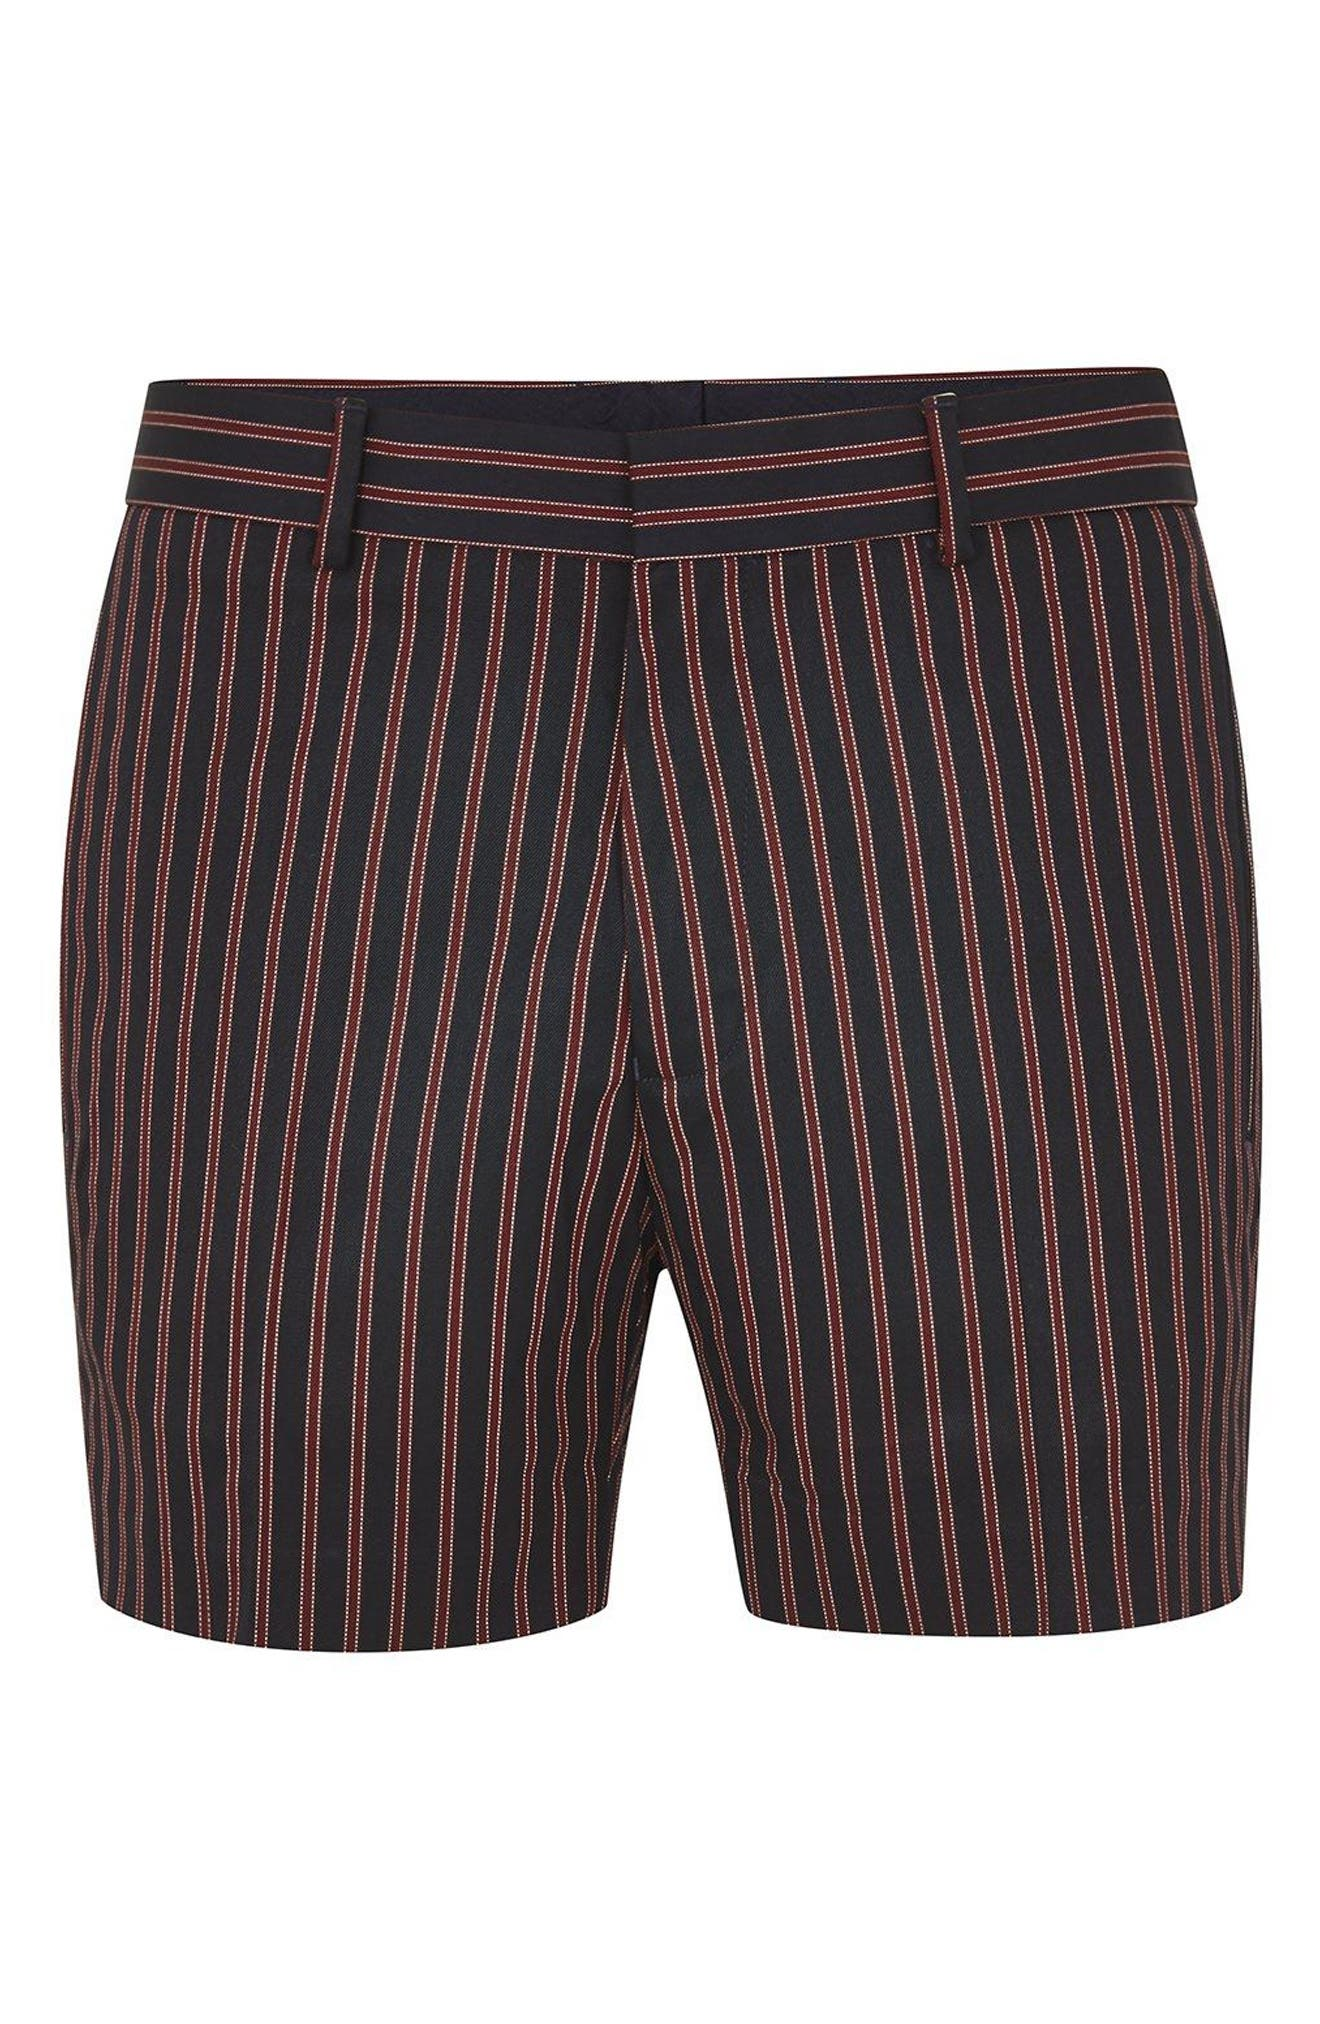 Stripe Shorts,                             Alternate thumbnail 4, color,                             Red